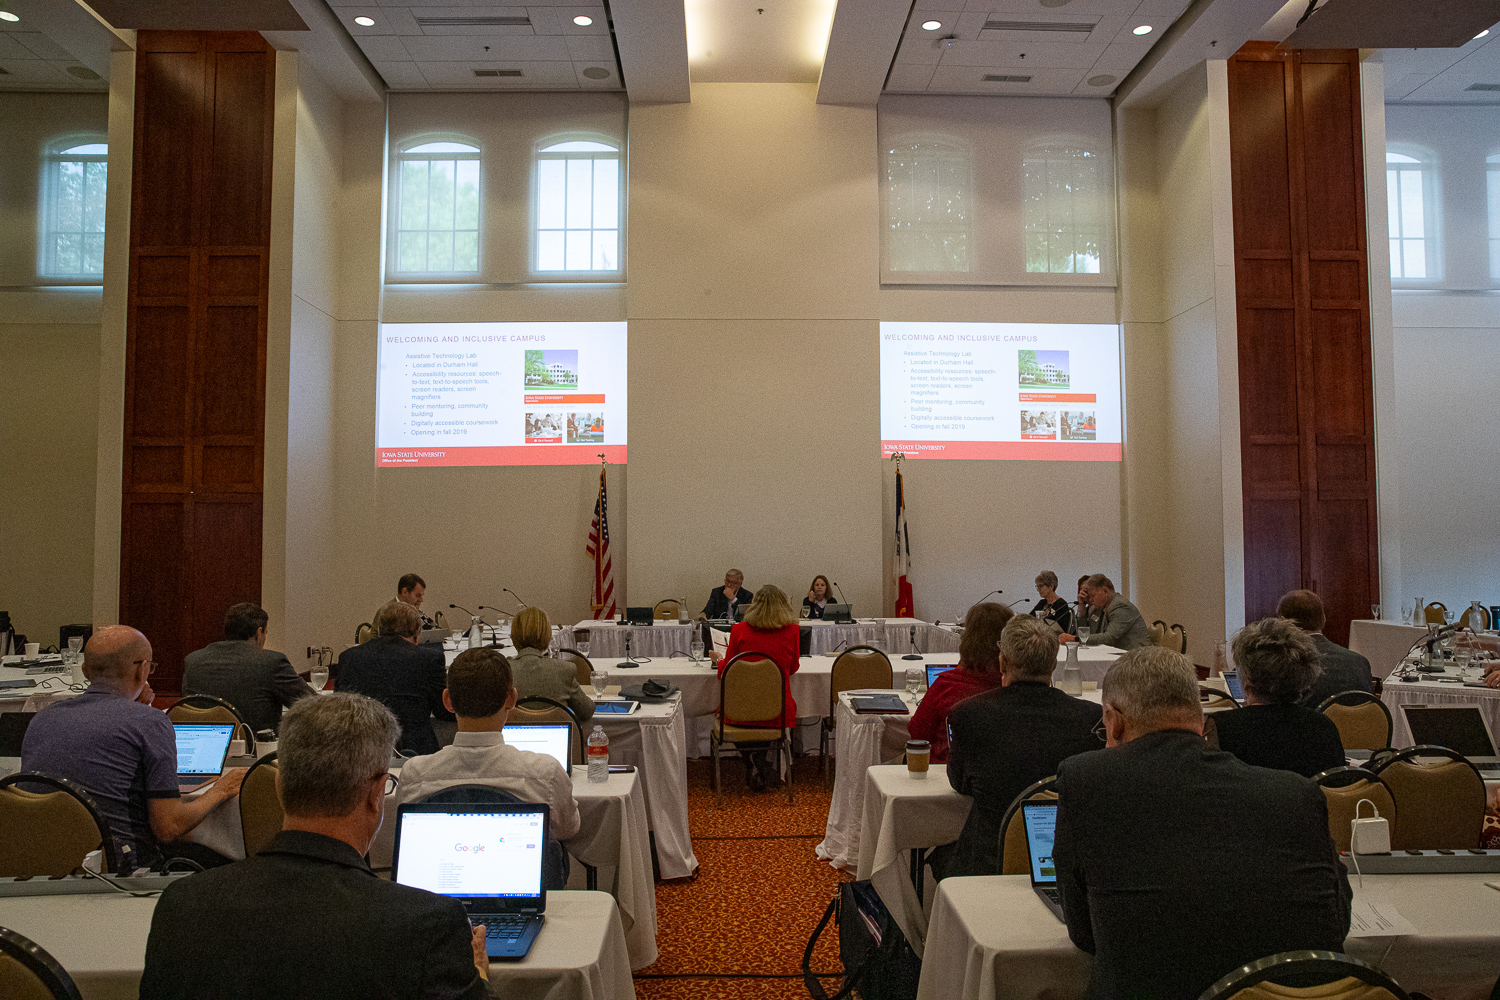 Iowa State University President Wendy Wintersteen gives a presentation to the Iowa Board of Regents during a meeting at the Iowa State Alumni Center in Ames, Iowa, on Thursday, June 6, 2019. (Wyatt Dlouhy/The Daily Iowan)